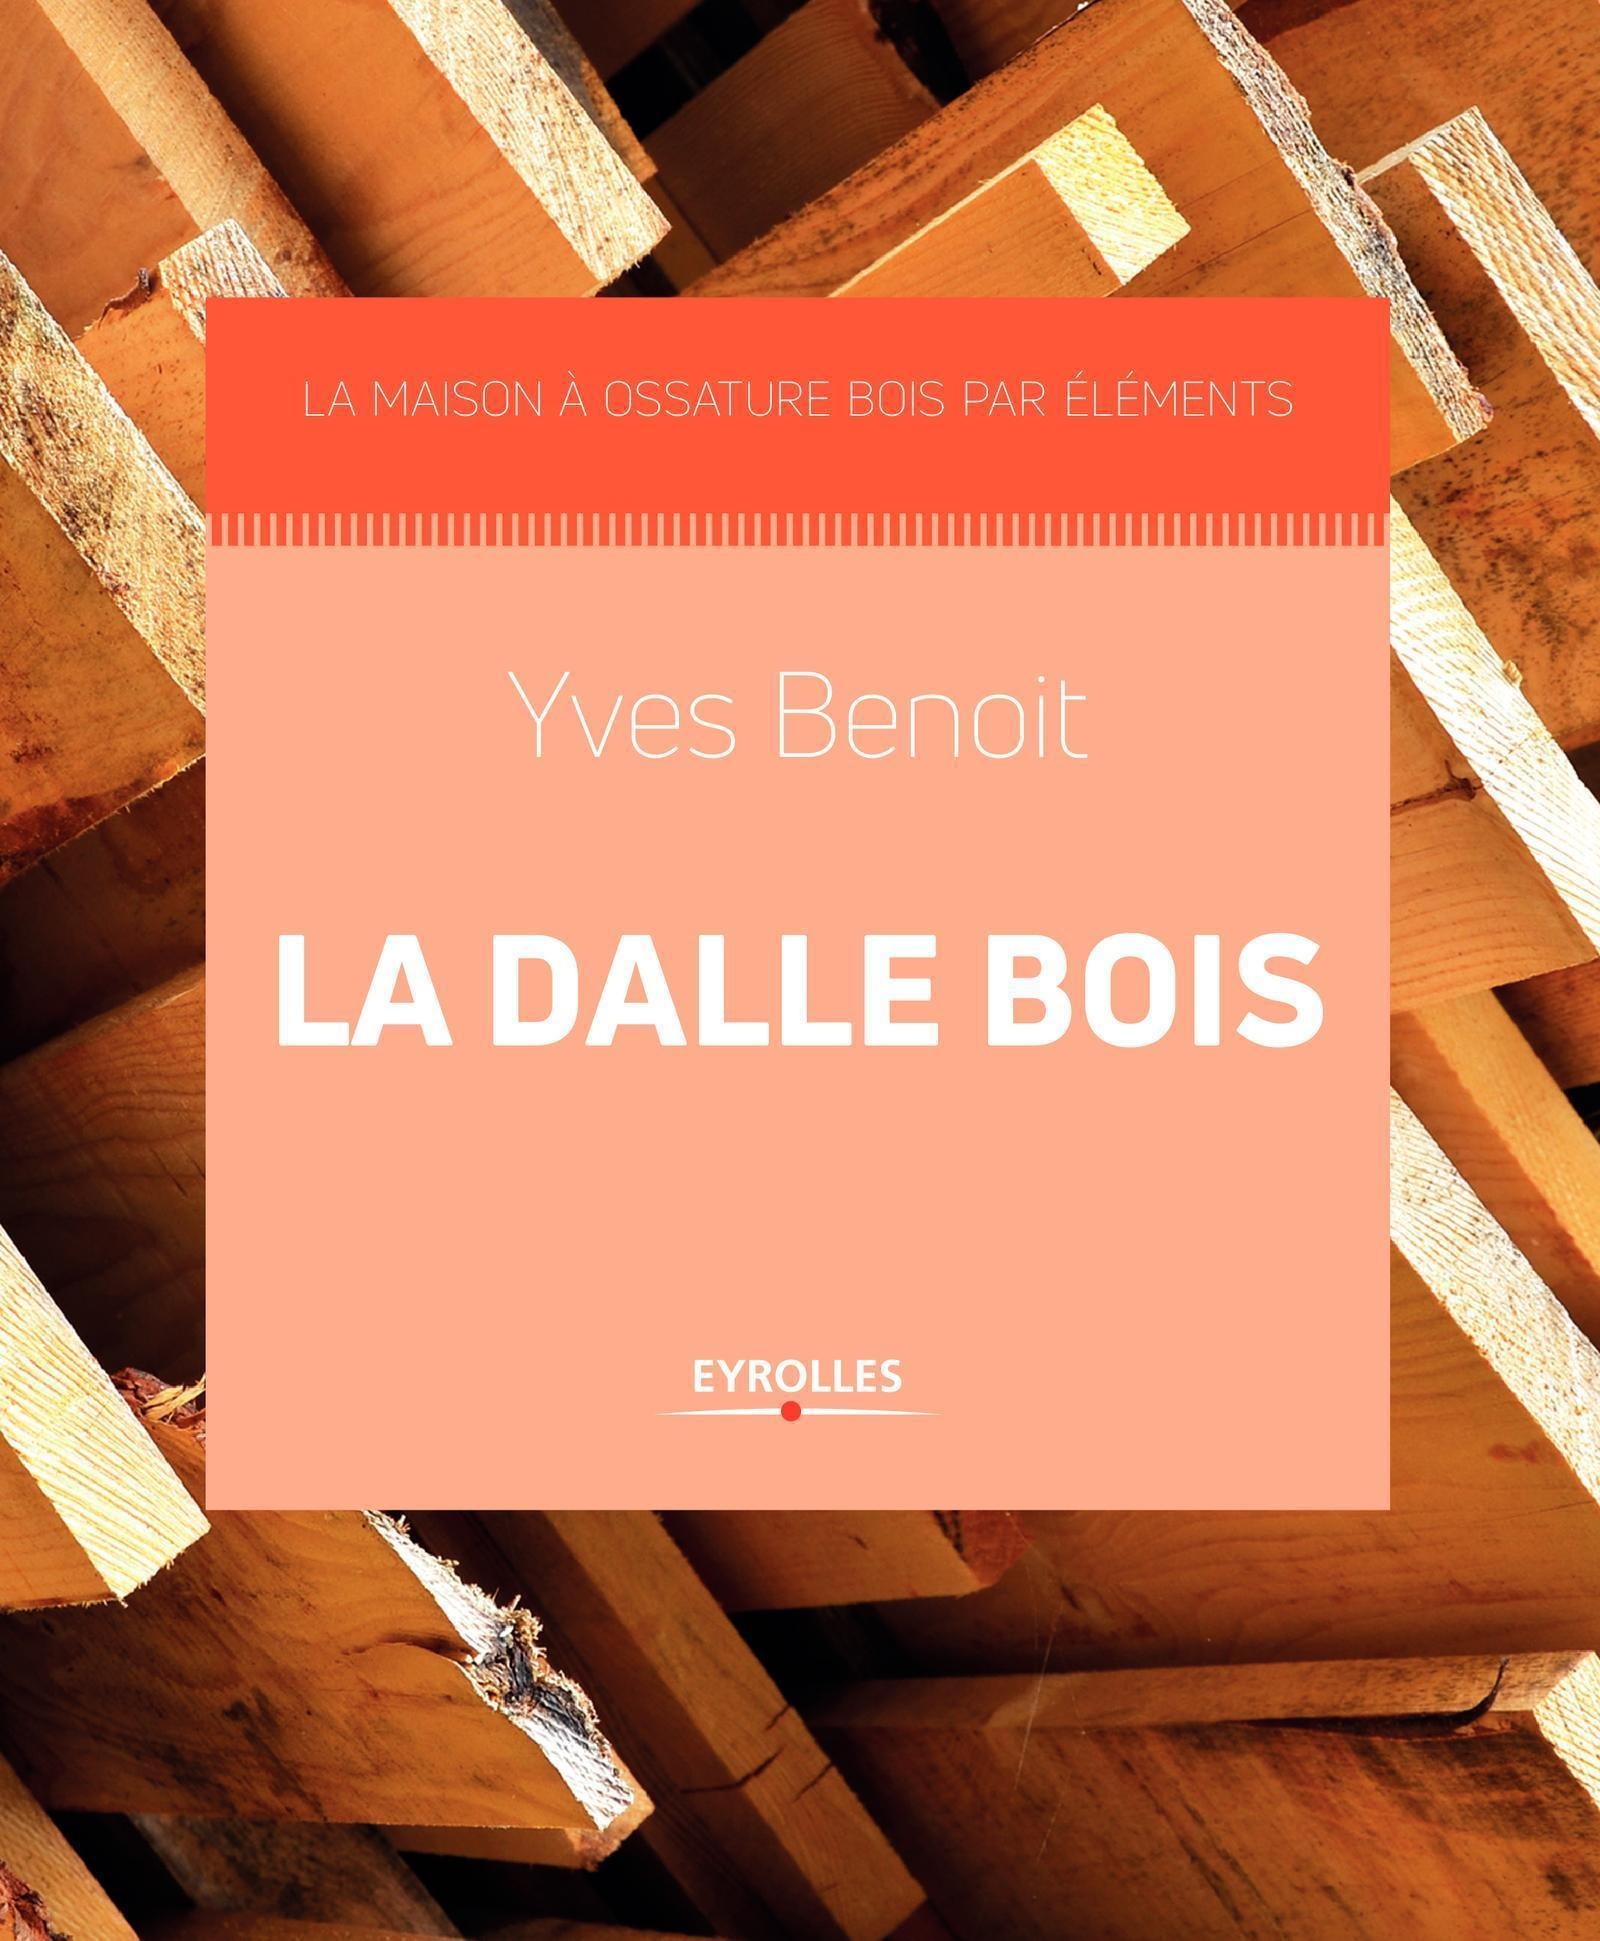 LA DALLE BOIS - LA MAISON A OSSATURE BOIS PAR ELEMENTS